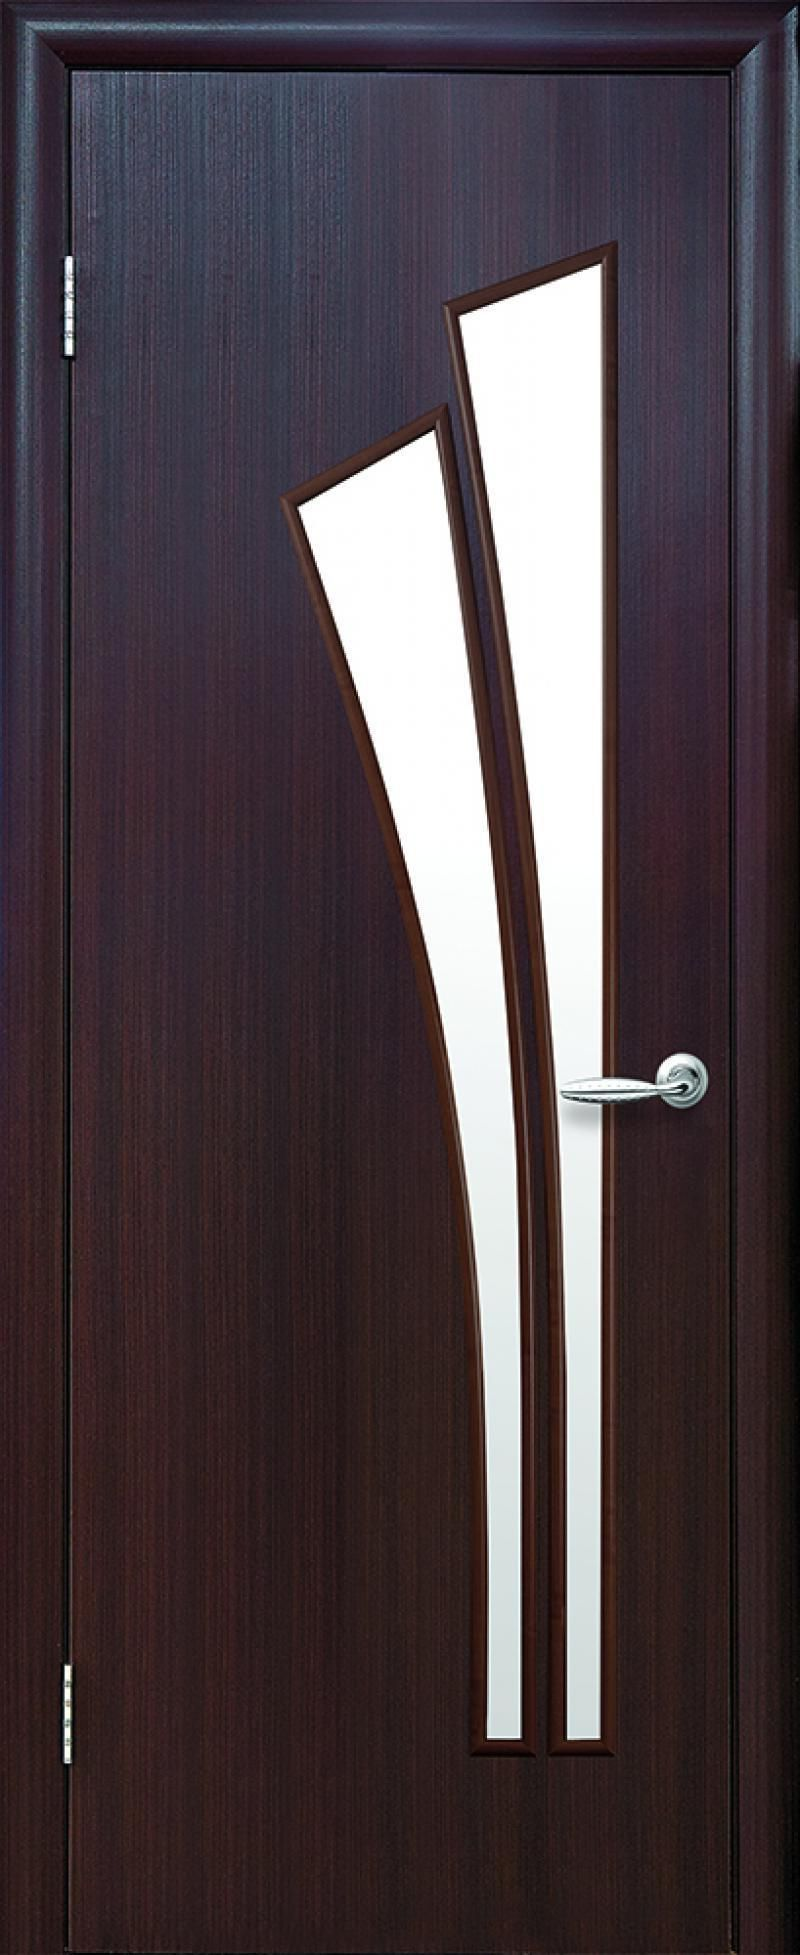 Modern interior door design for Bedroom entrance door designs